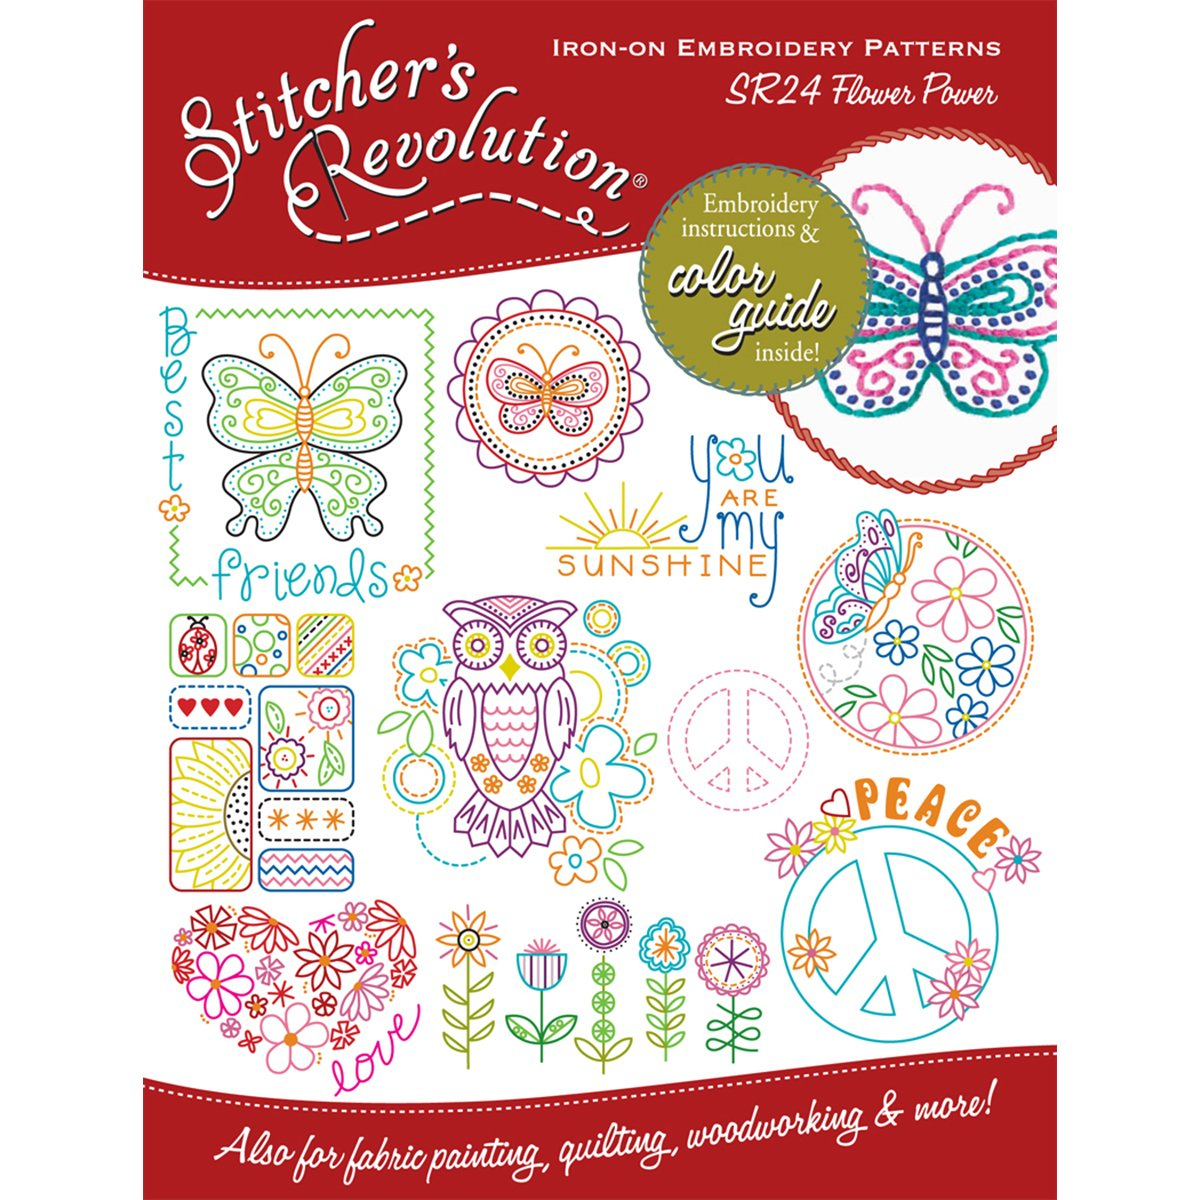 Stitchers Revolution Flower Power Iron-On Transfer Pattern for Embroidery product image